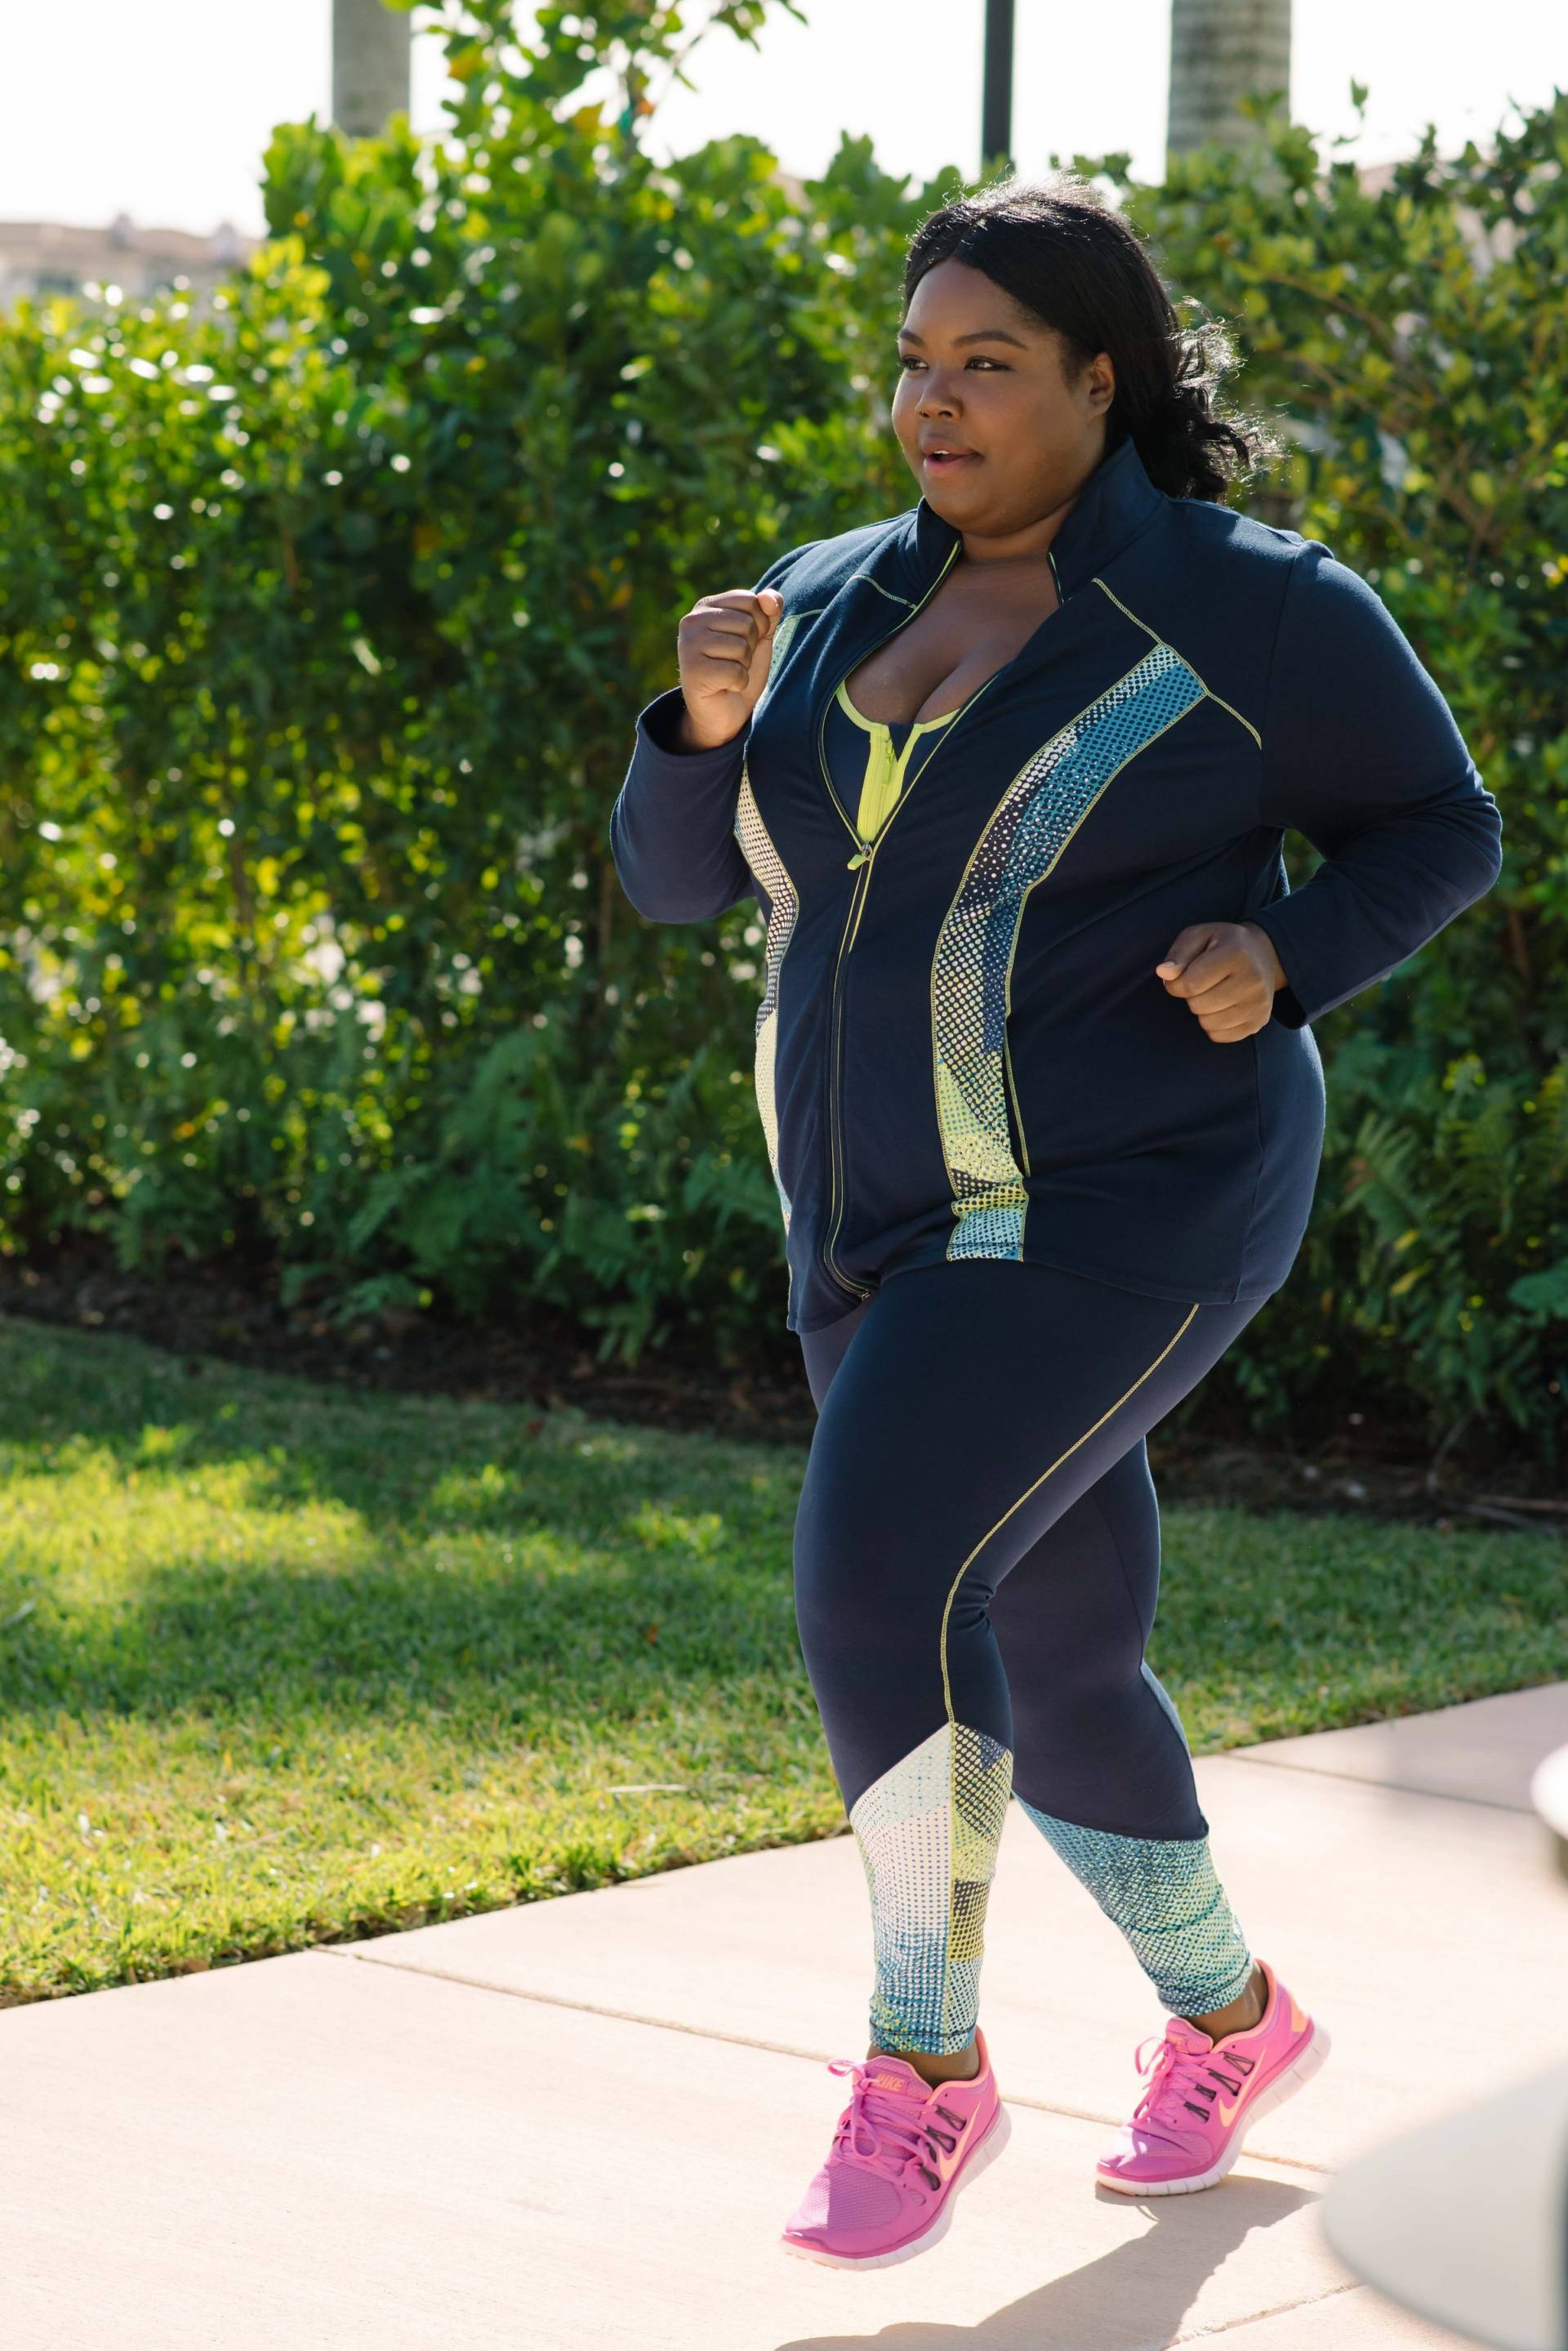 How To Get Back Into The Workout Groove